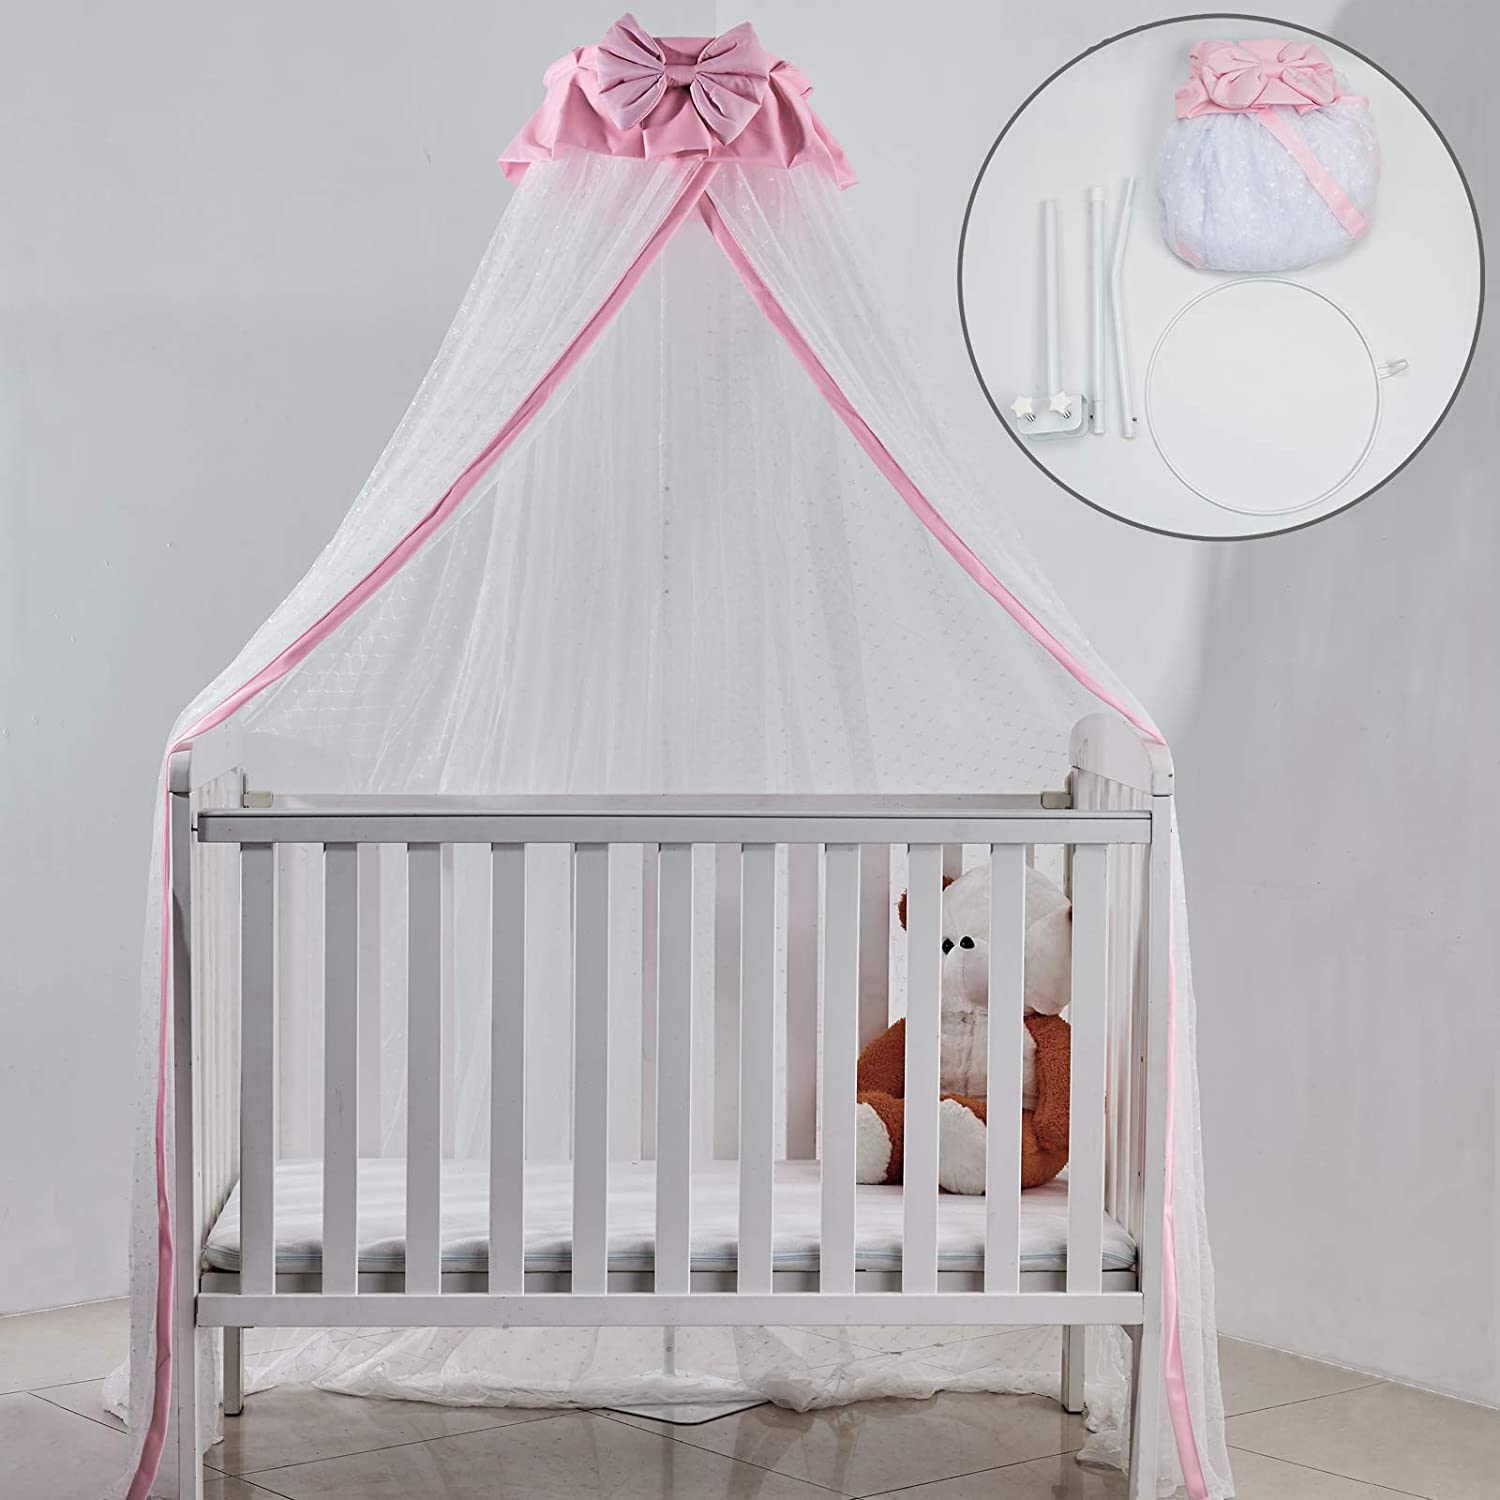 Crib Net Set- Baby Bed Dome Canopy Netting Cover with Metal Adjustable Floor Stand Holder Infant Toddler Cots Tent Net-Protect Your Baby from Bites (Pink/Clip-on Bracket Holder)